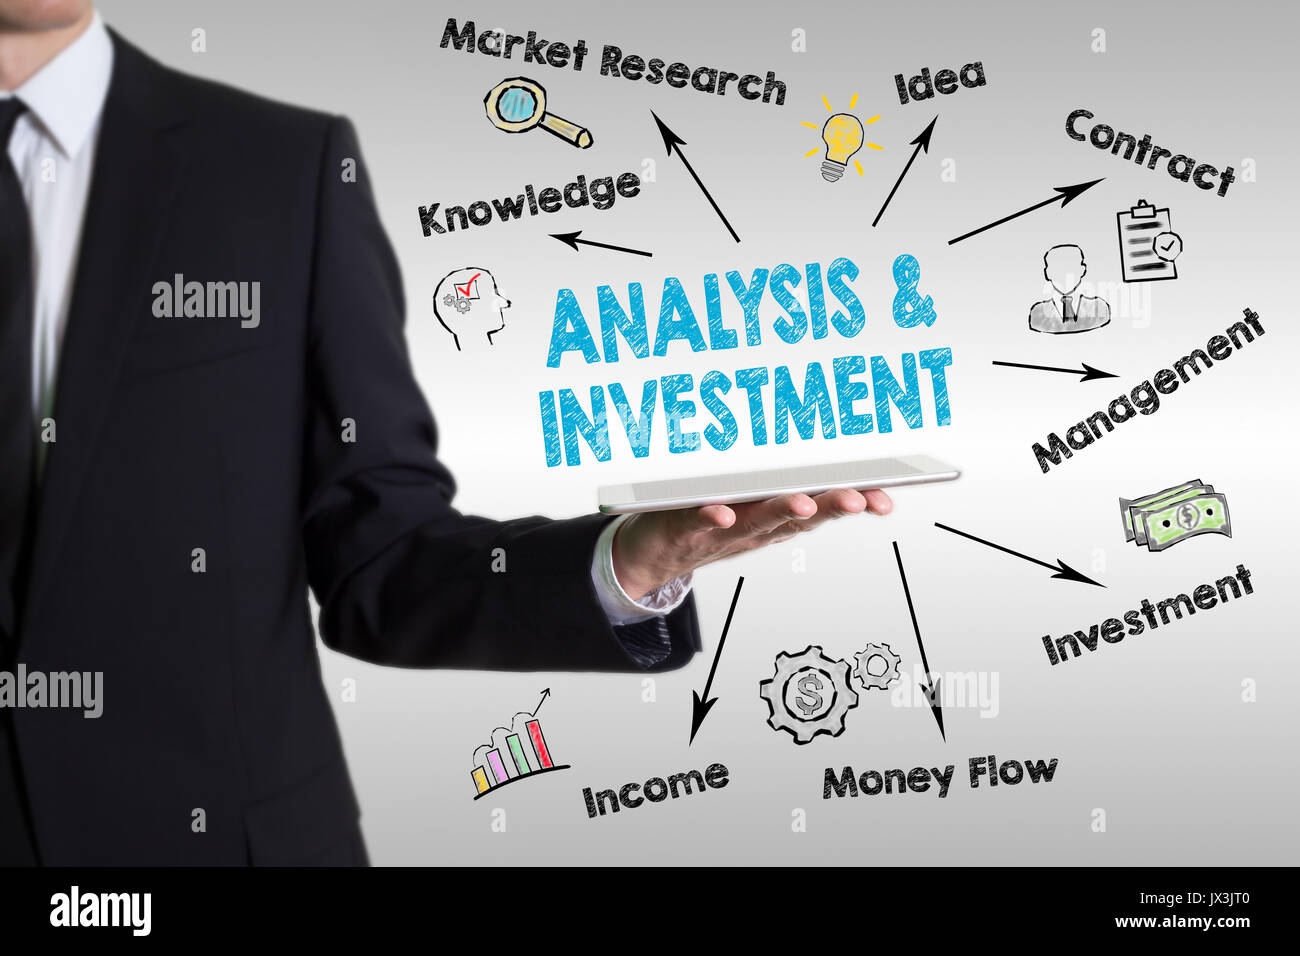 Analysis and Investment concept. Man holding a tablet computer. - Stock Image